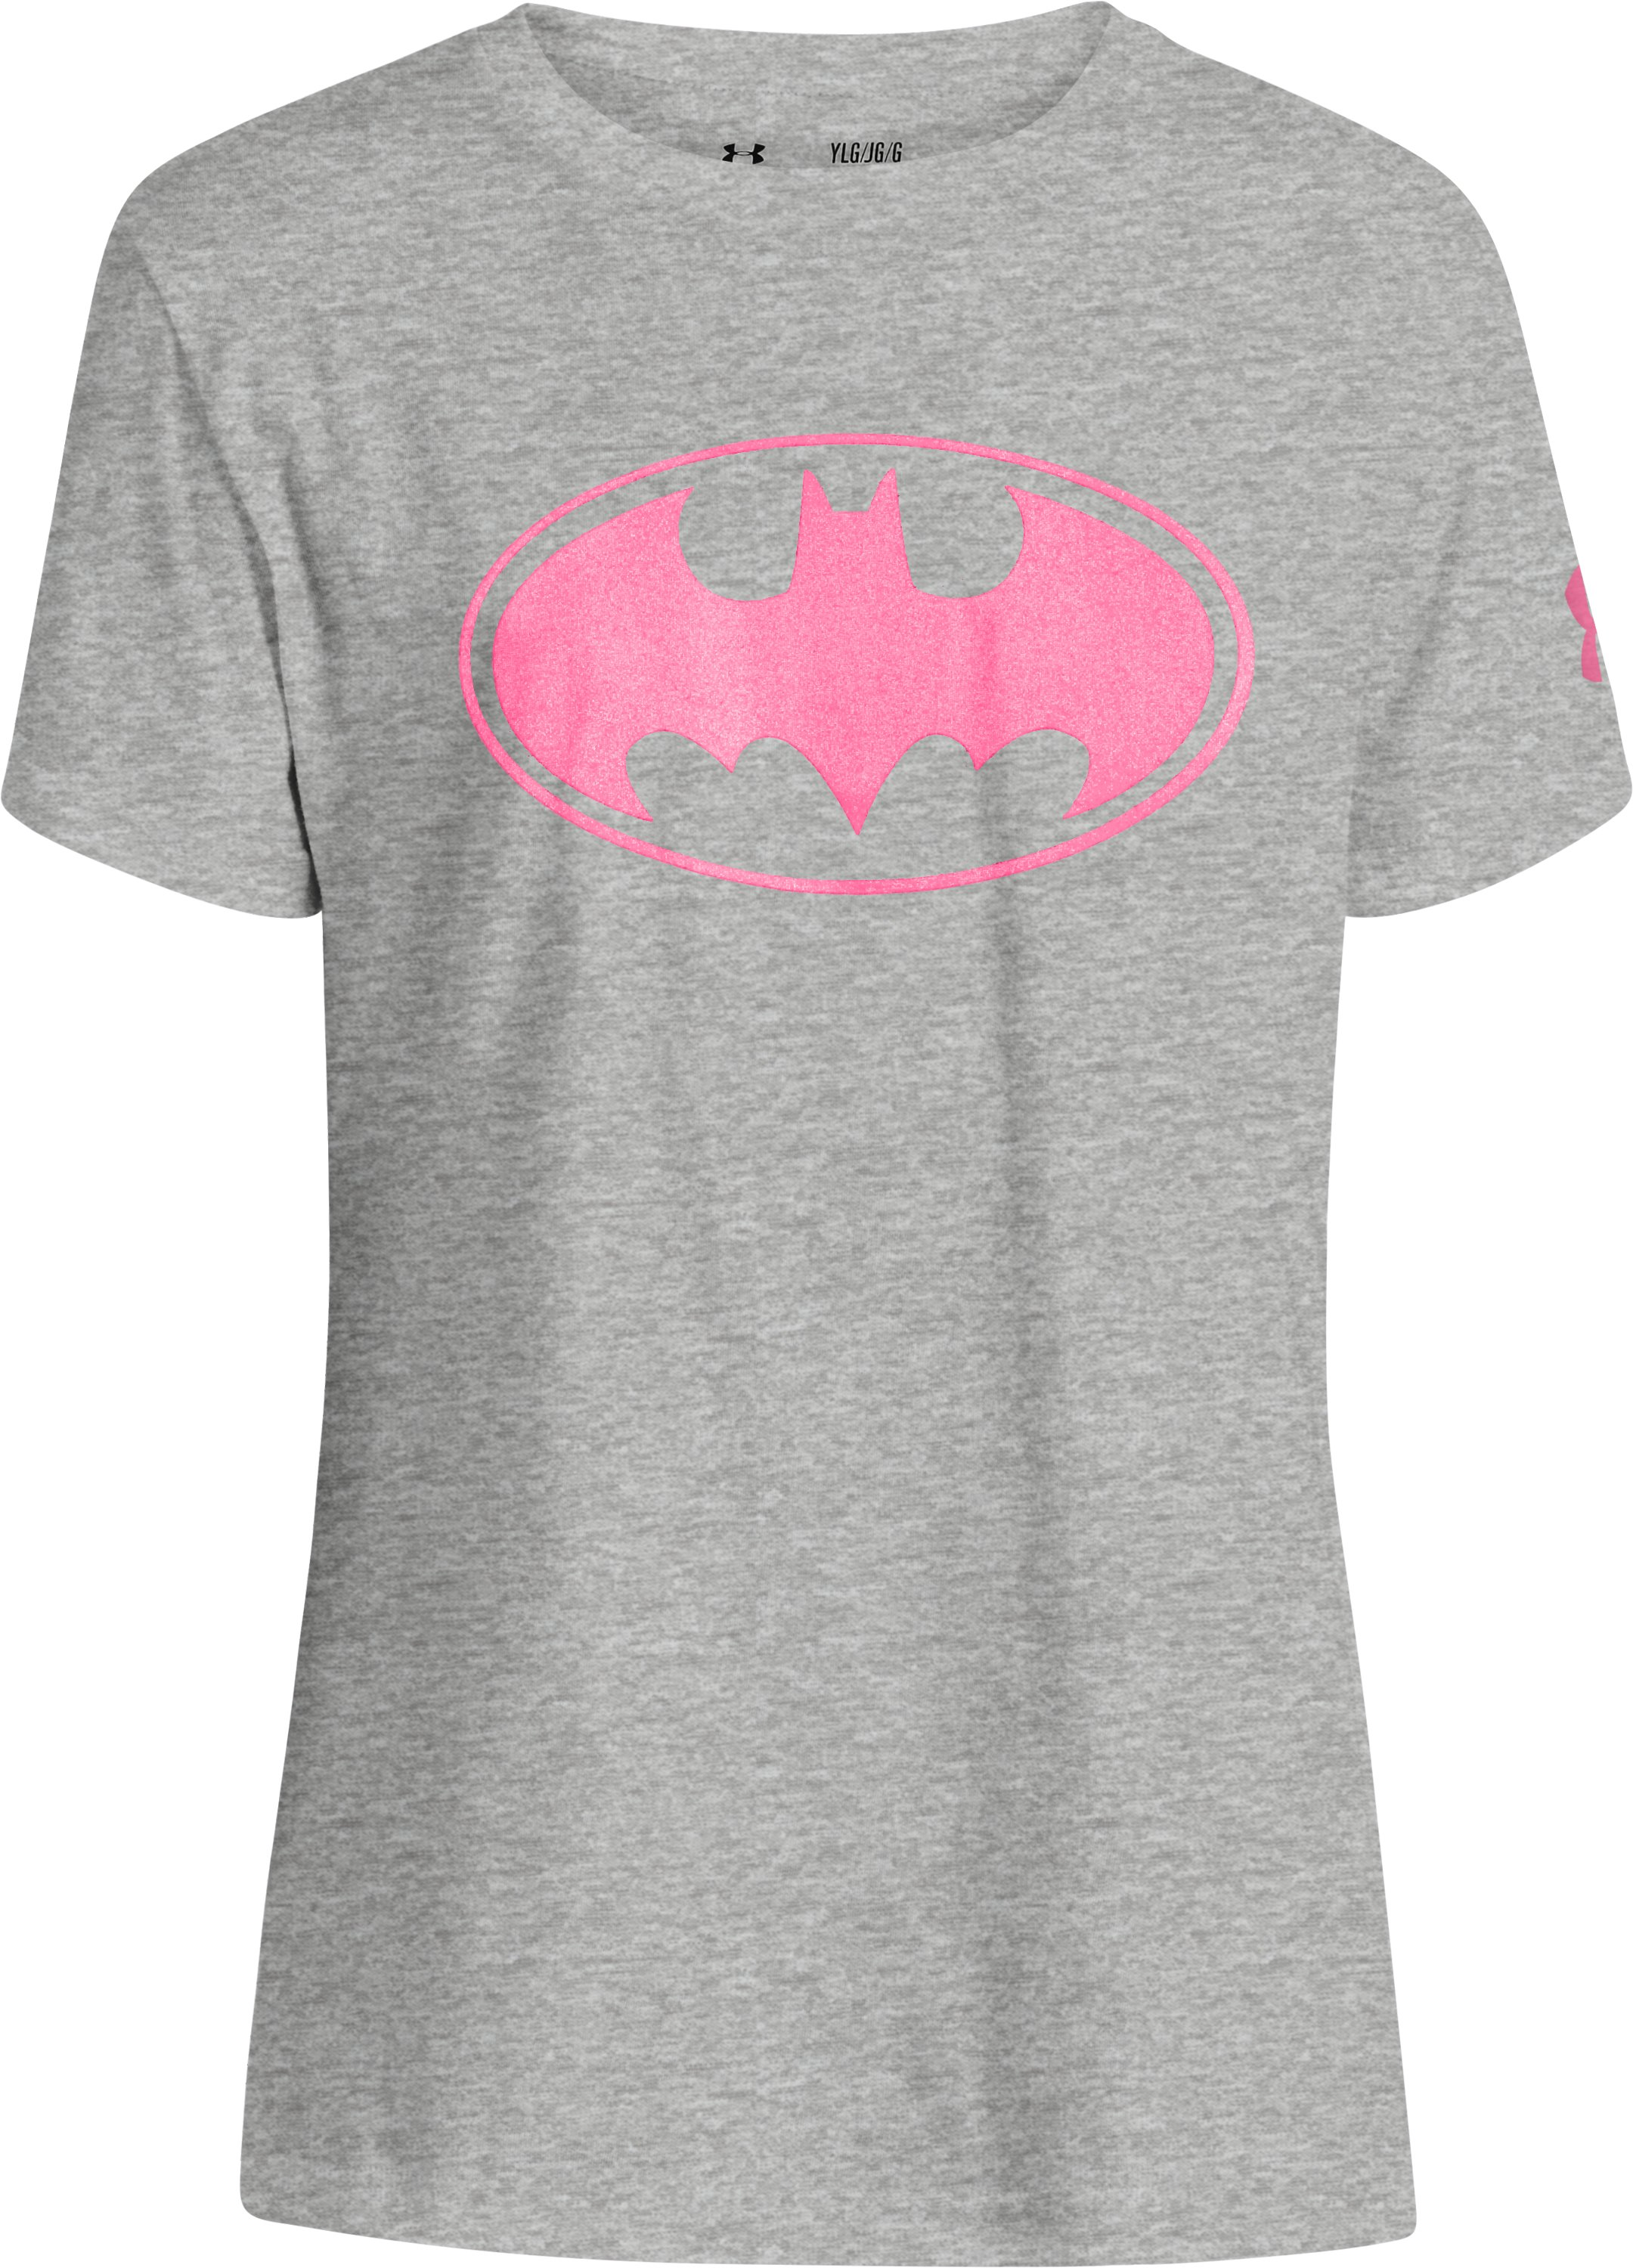 Girls' Under Armour® Alter Ego Batgirl Sparkle T-Shirt, True Gray Heather, zoomed image